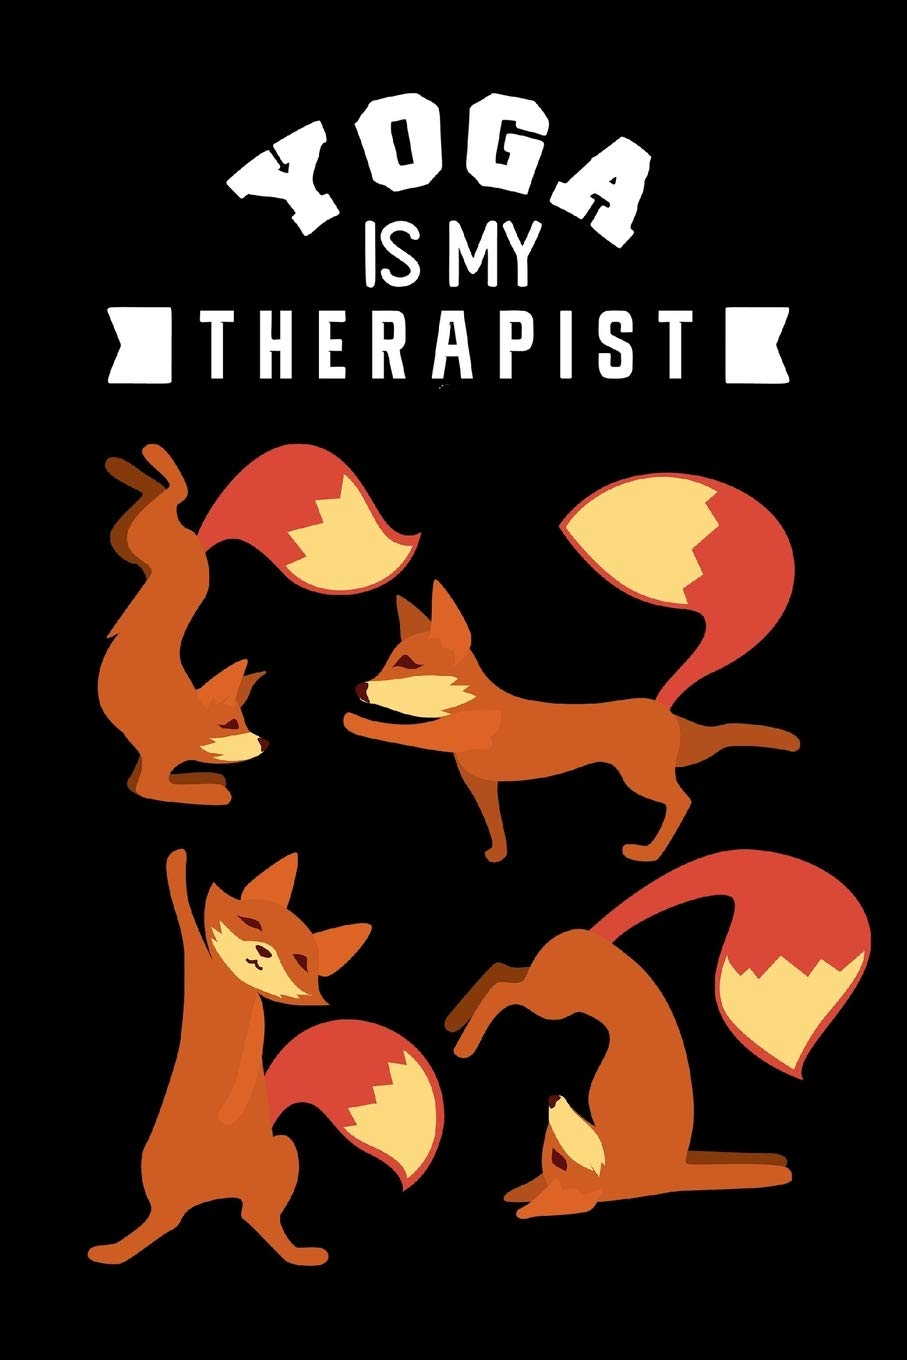 Yoga Is My Therapist Funny Yoga Fox Gag Gifts For Her Hilarious Mother S Day Gift Ideas Christmas Gifts For Yoga Lovers Small Lined Journal Amazon Co Uk Publishing Lol Thingy 9781671406797 Books